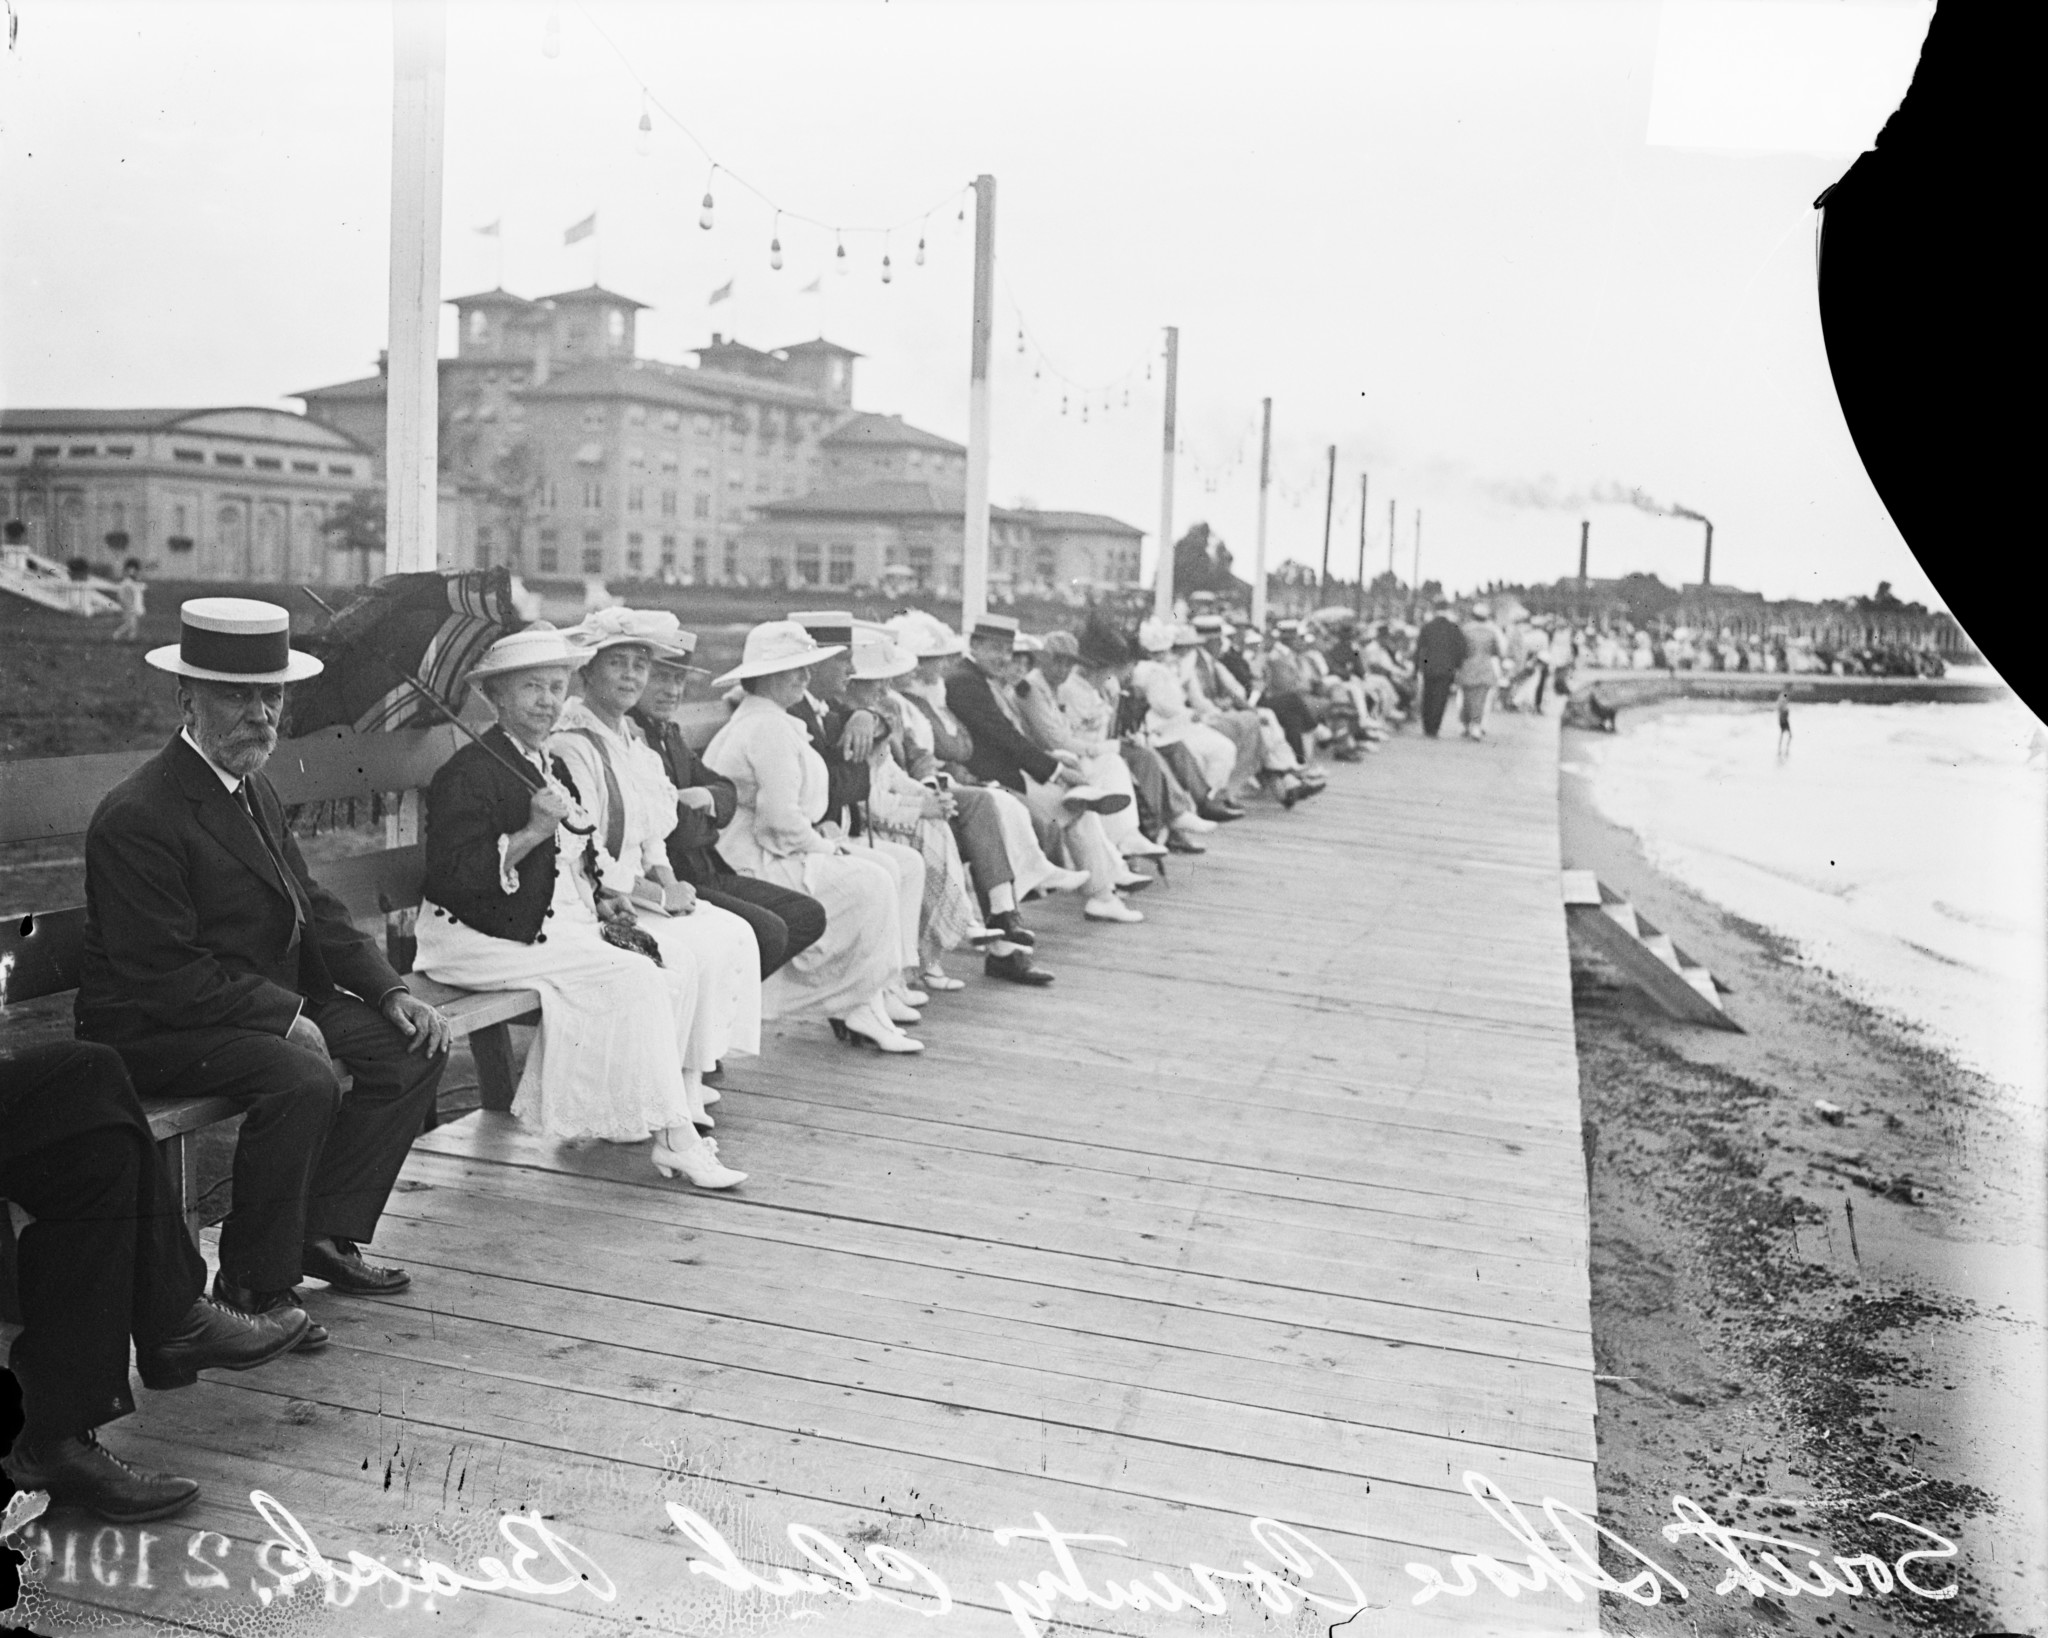 People sitting on a bench along the South Shore Country Club boardwalk at 7059 South Shore Drive, in the South Shore community, Chicago, Illinois, circa August 22, 1916. (Courtesy Chicago History Museum, Chicago Daily News negatives collection)